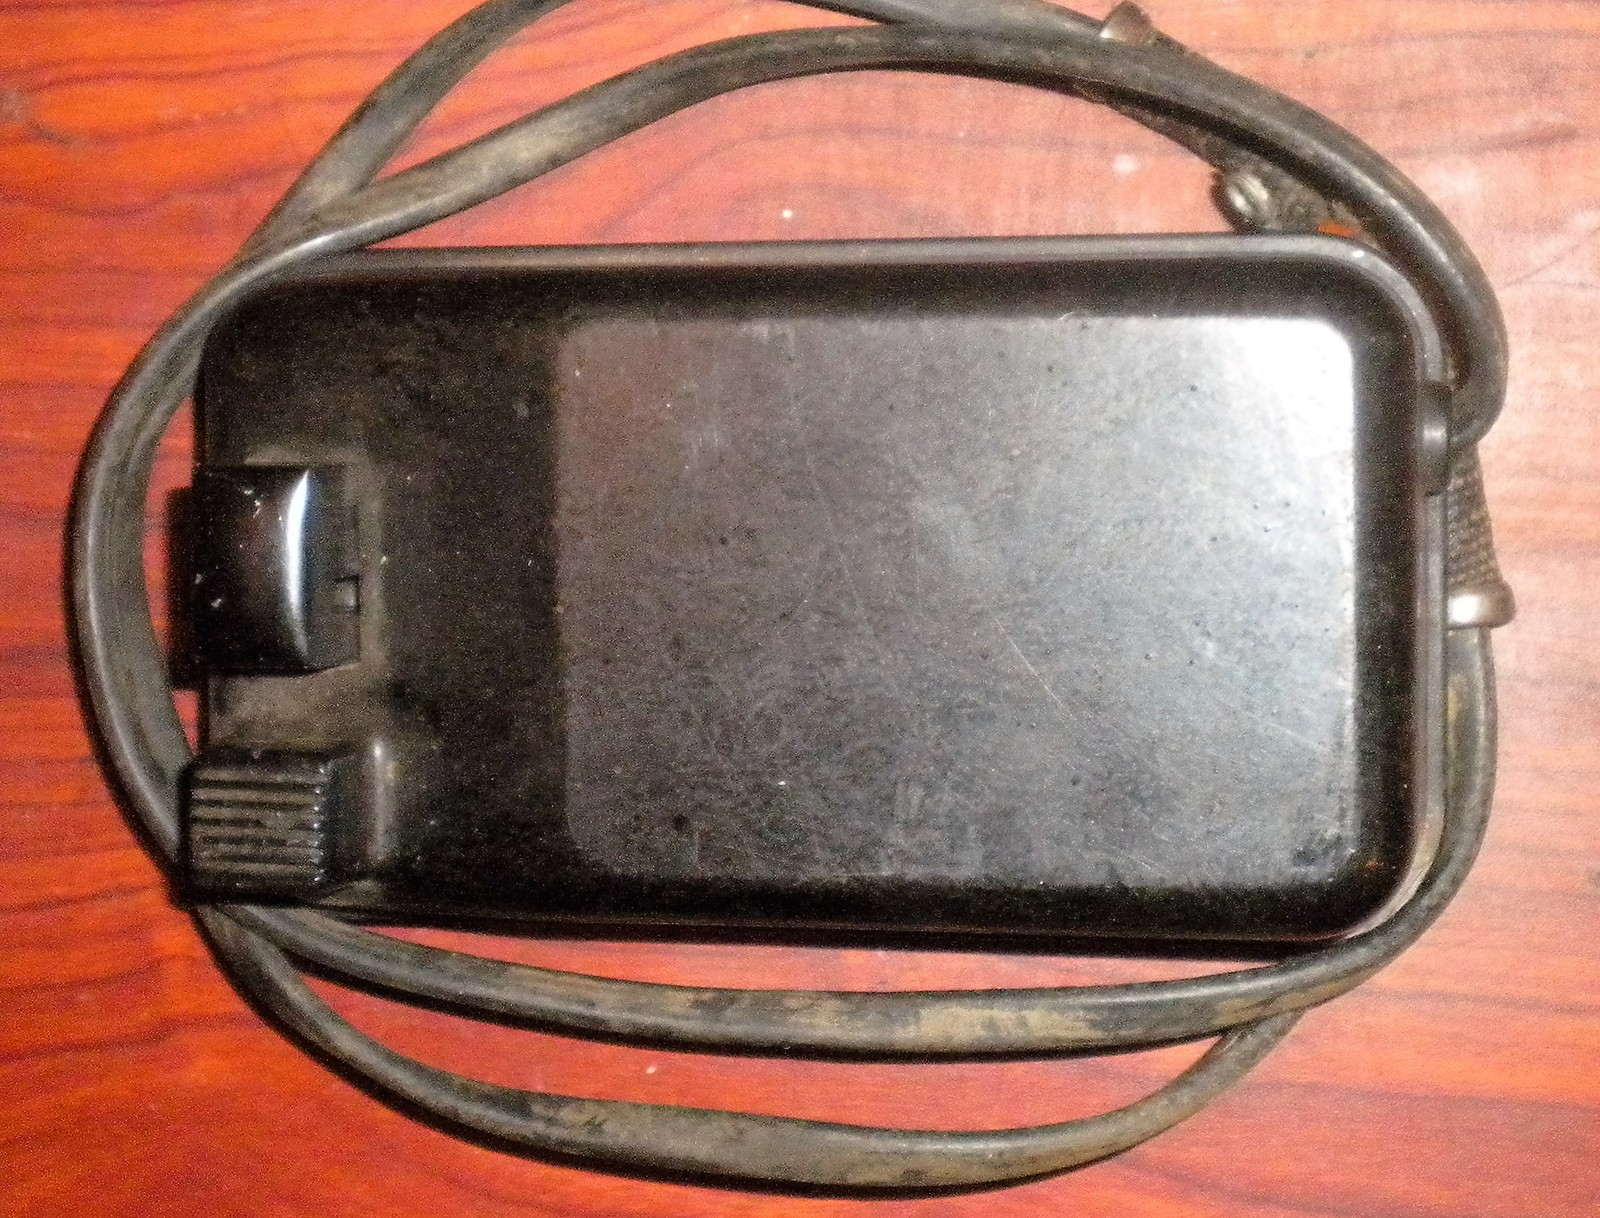 Foot Control Pedal With Cord #619494-002 For Singer Portable Sewing Machines